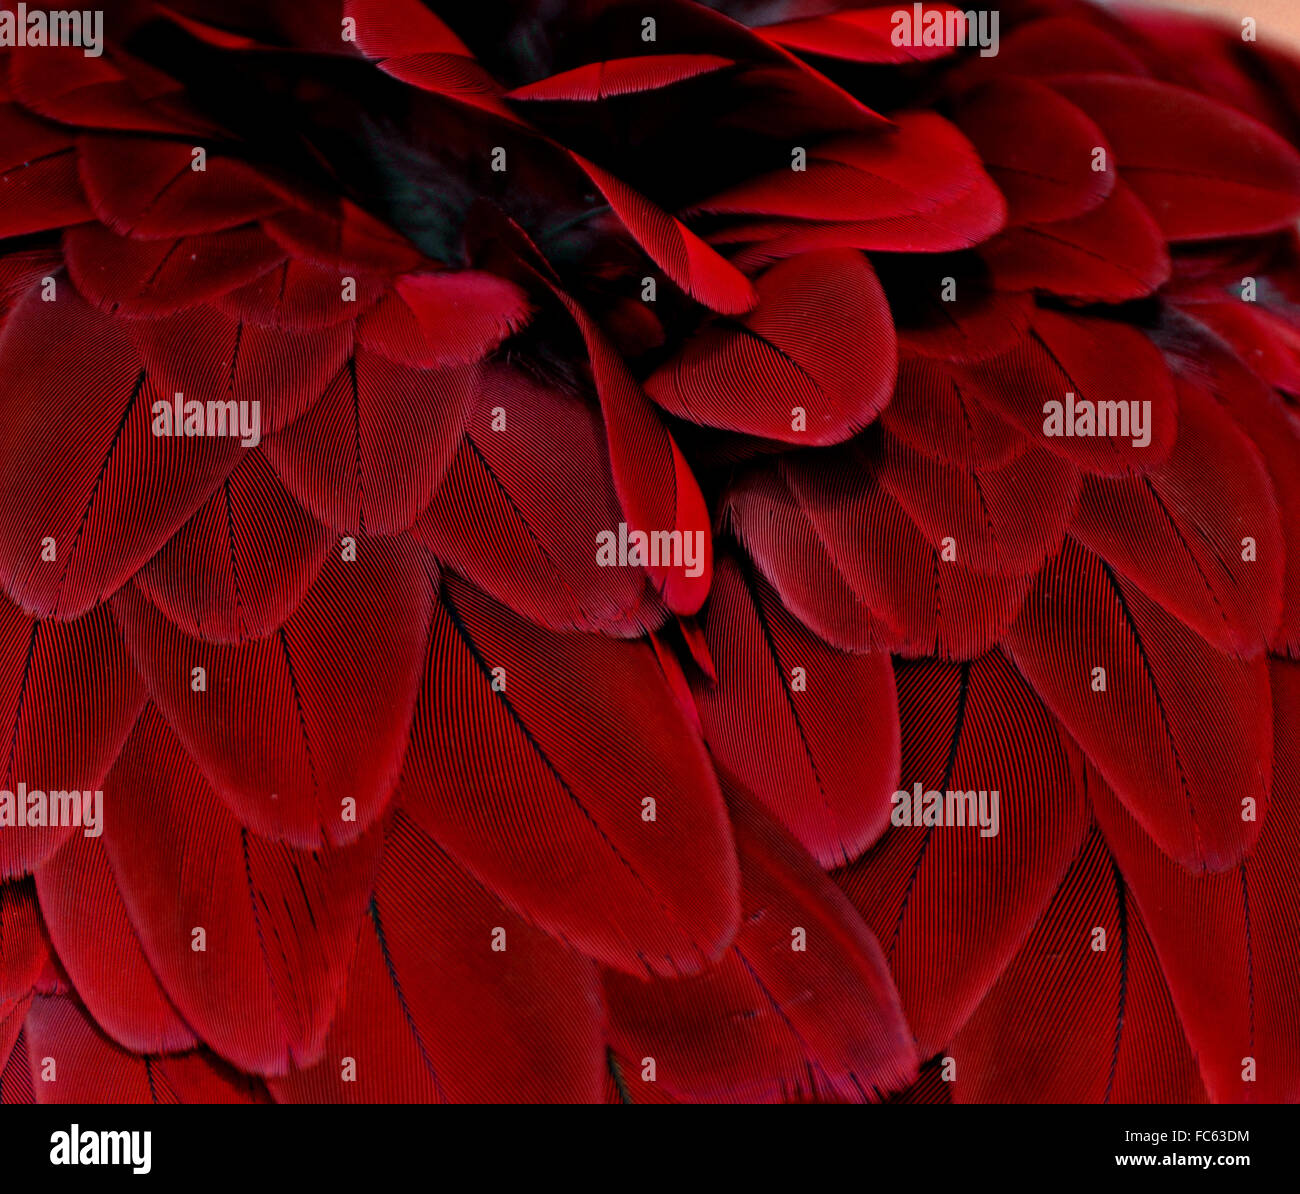 Red bird feathers from a macaw parrot - Stock Image